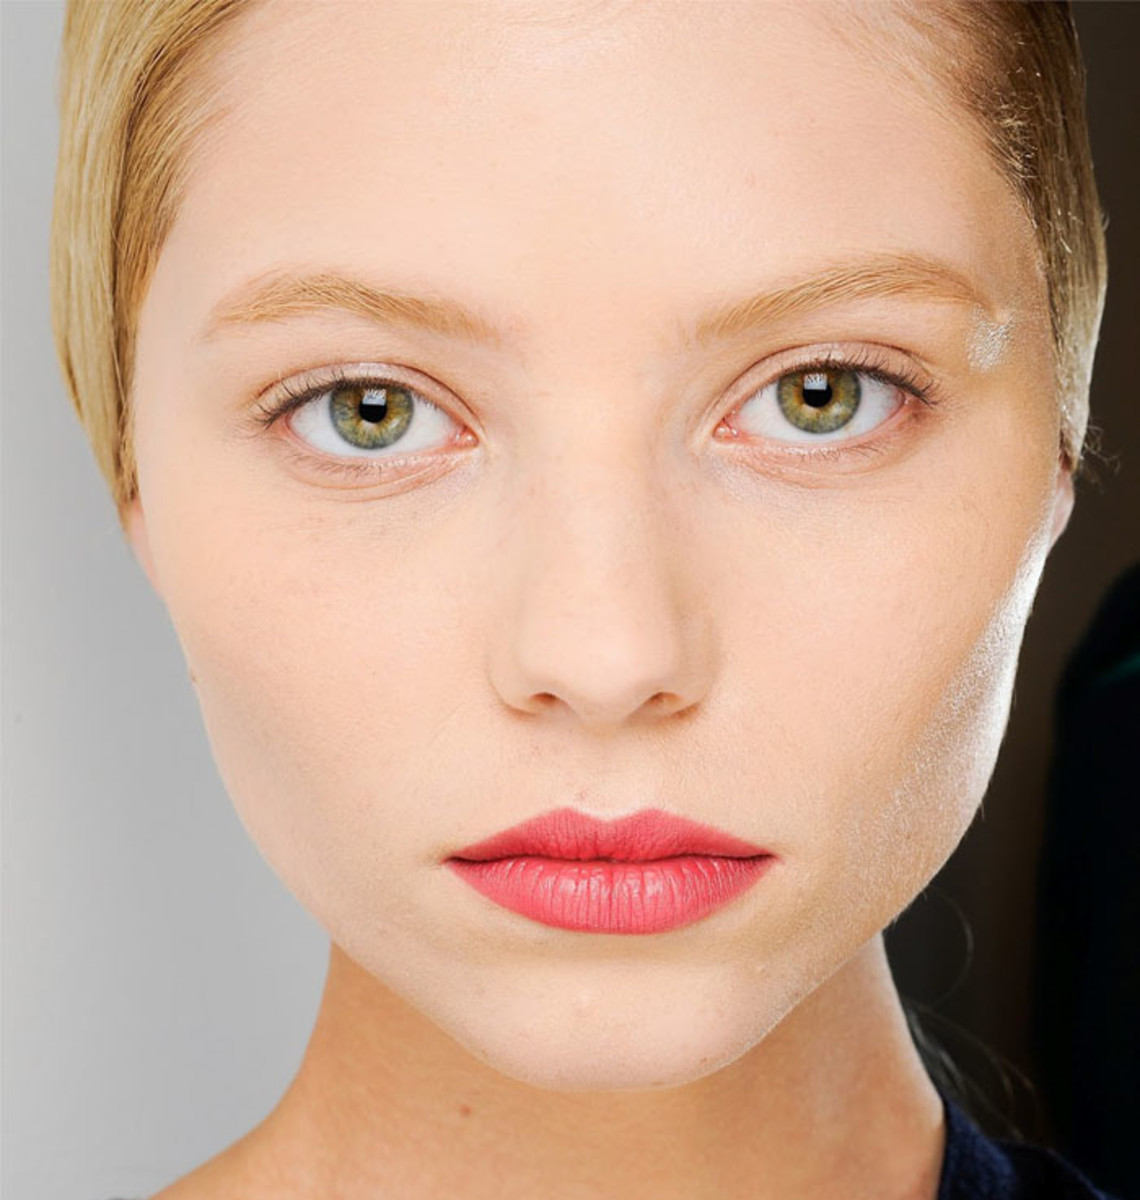 Brow bleaching: this matchy-matchy option should maybe stay on the runway.